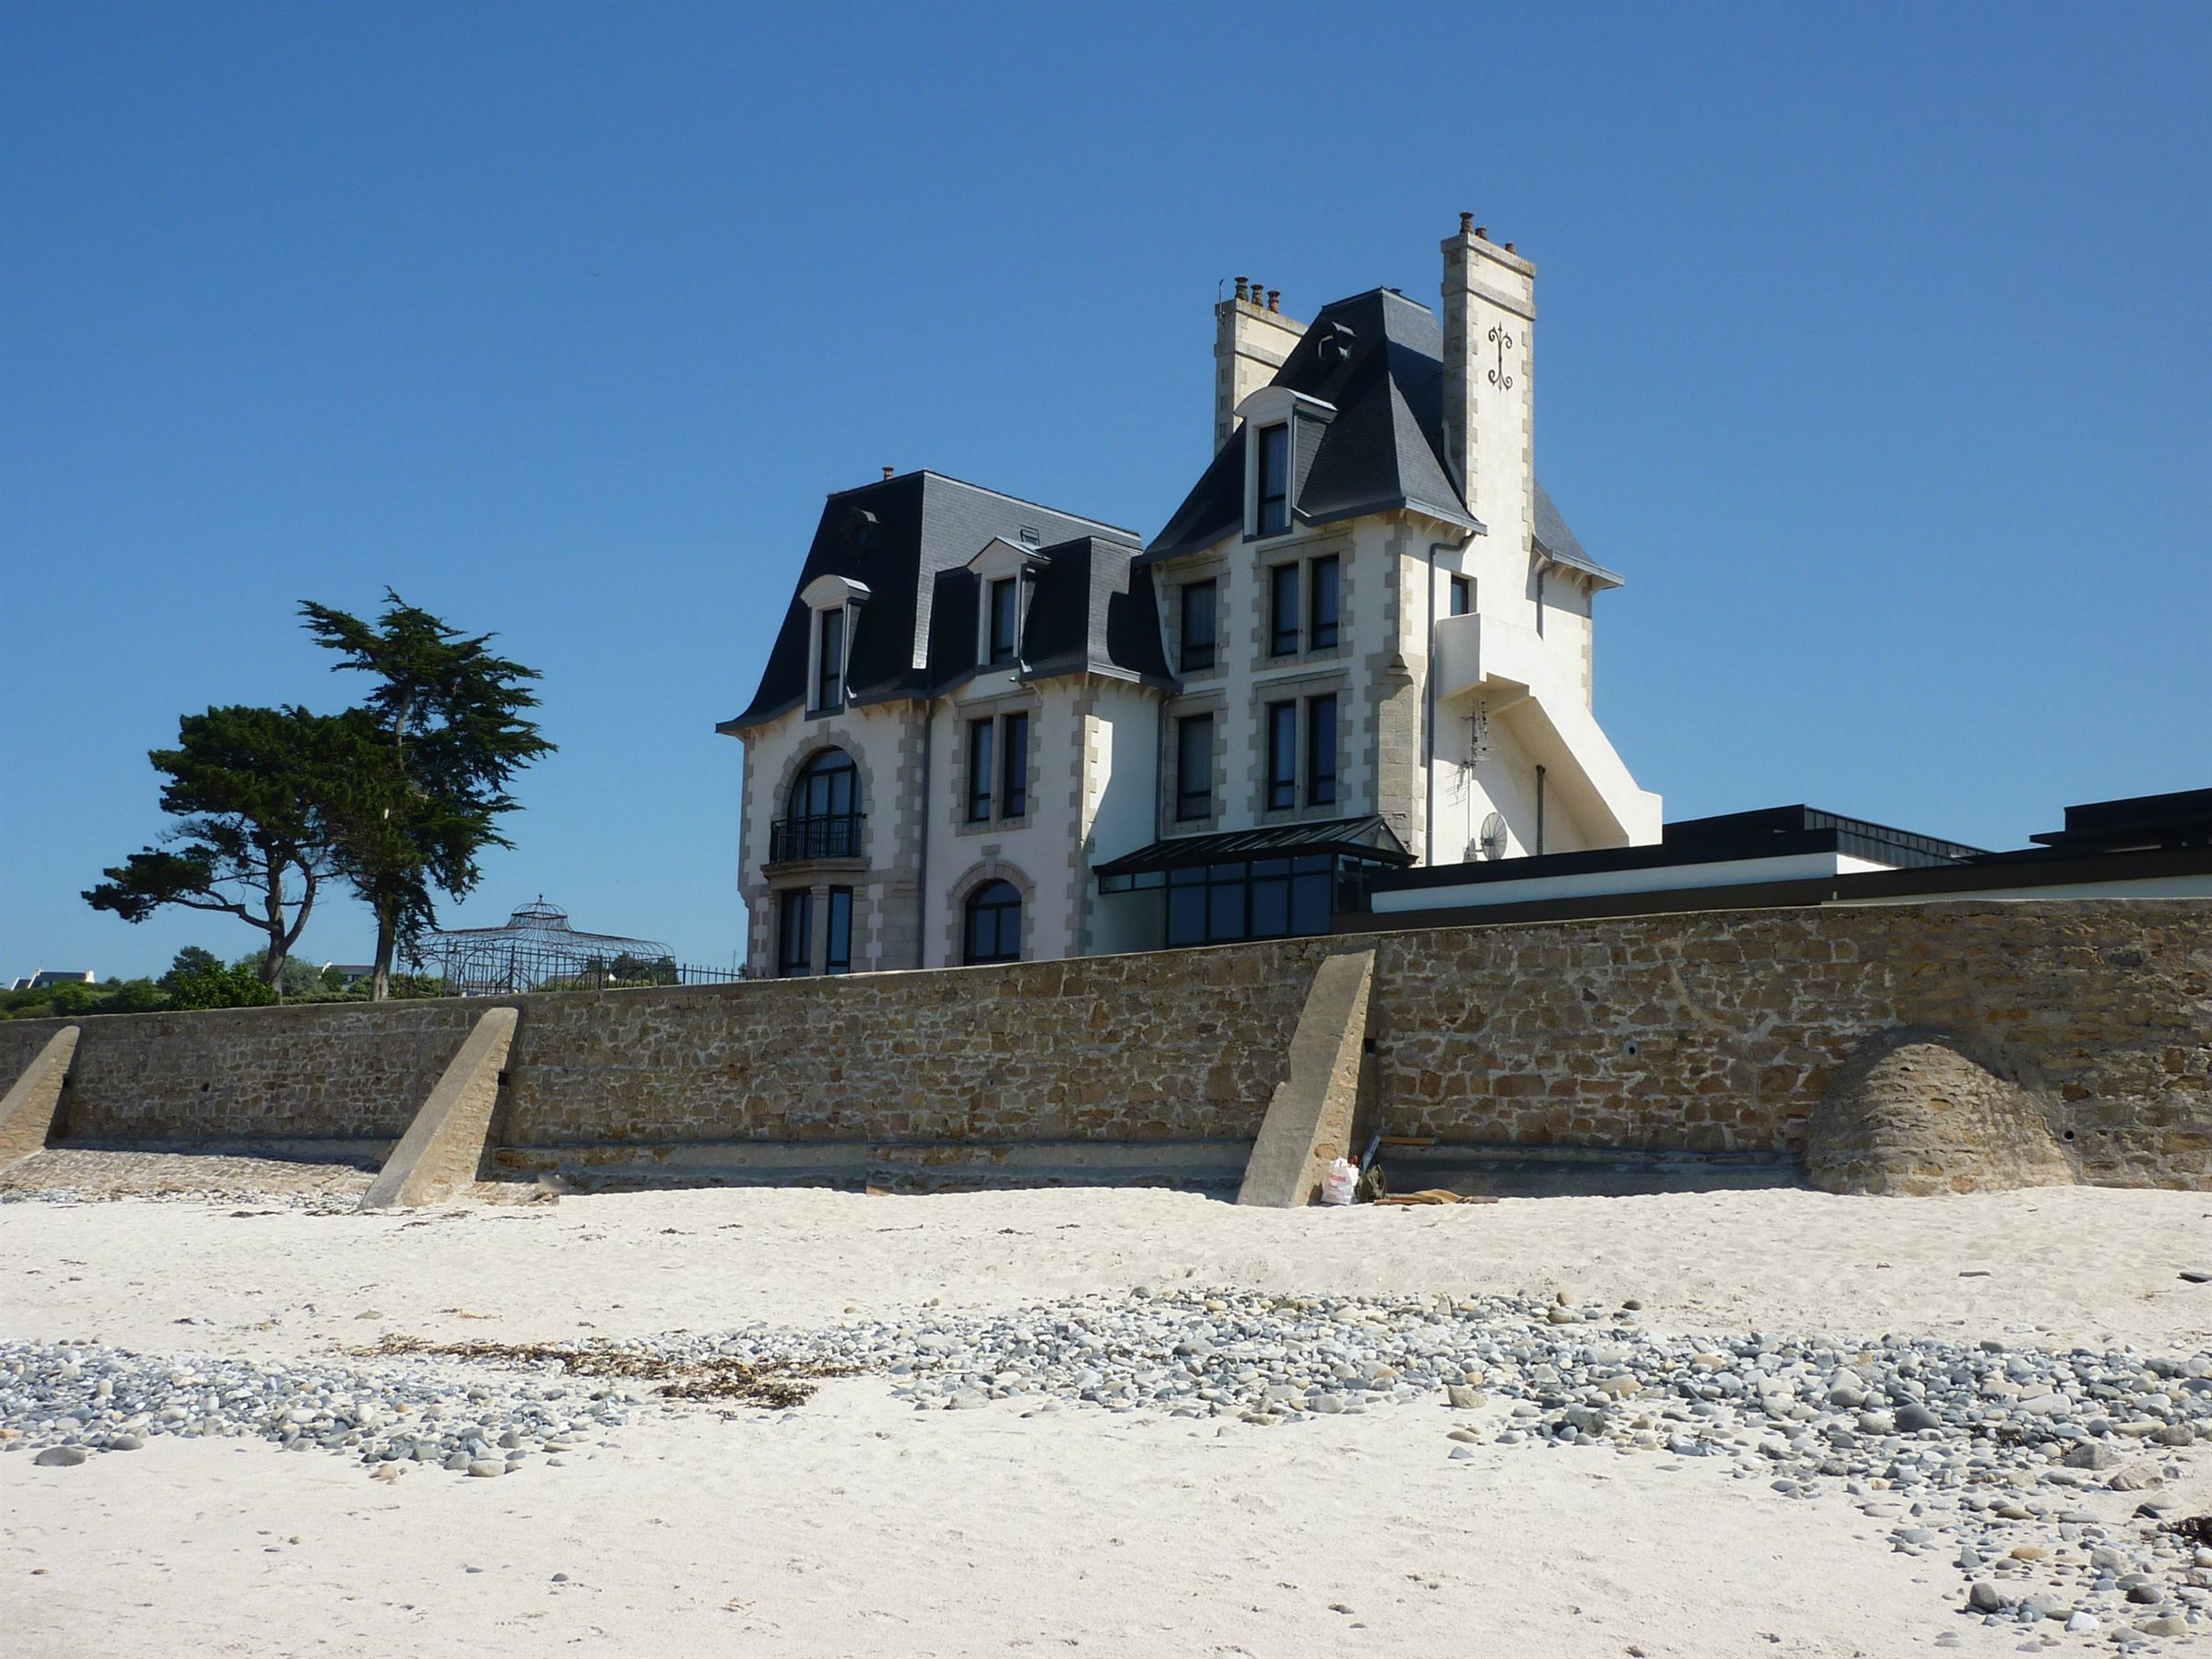 Property For Sale at Sea View castle for sale in Finistere, Brittany with direct beach access